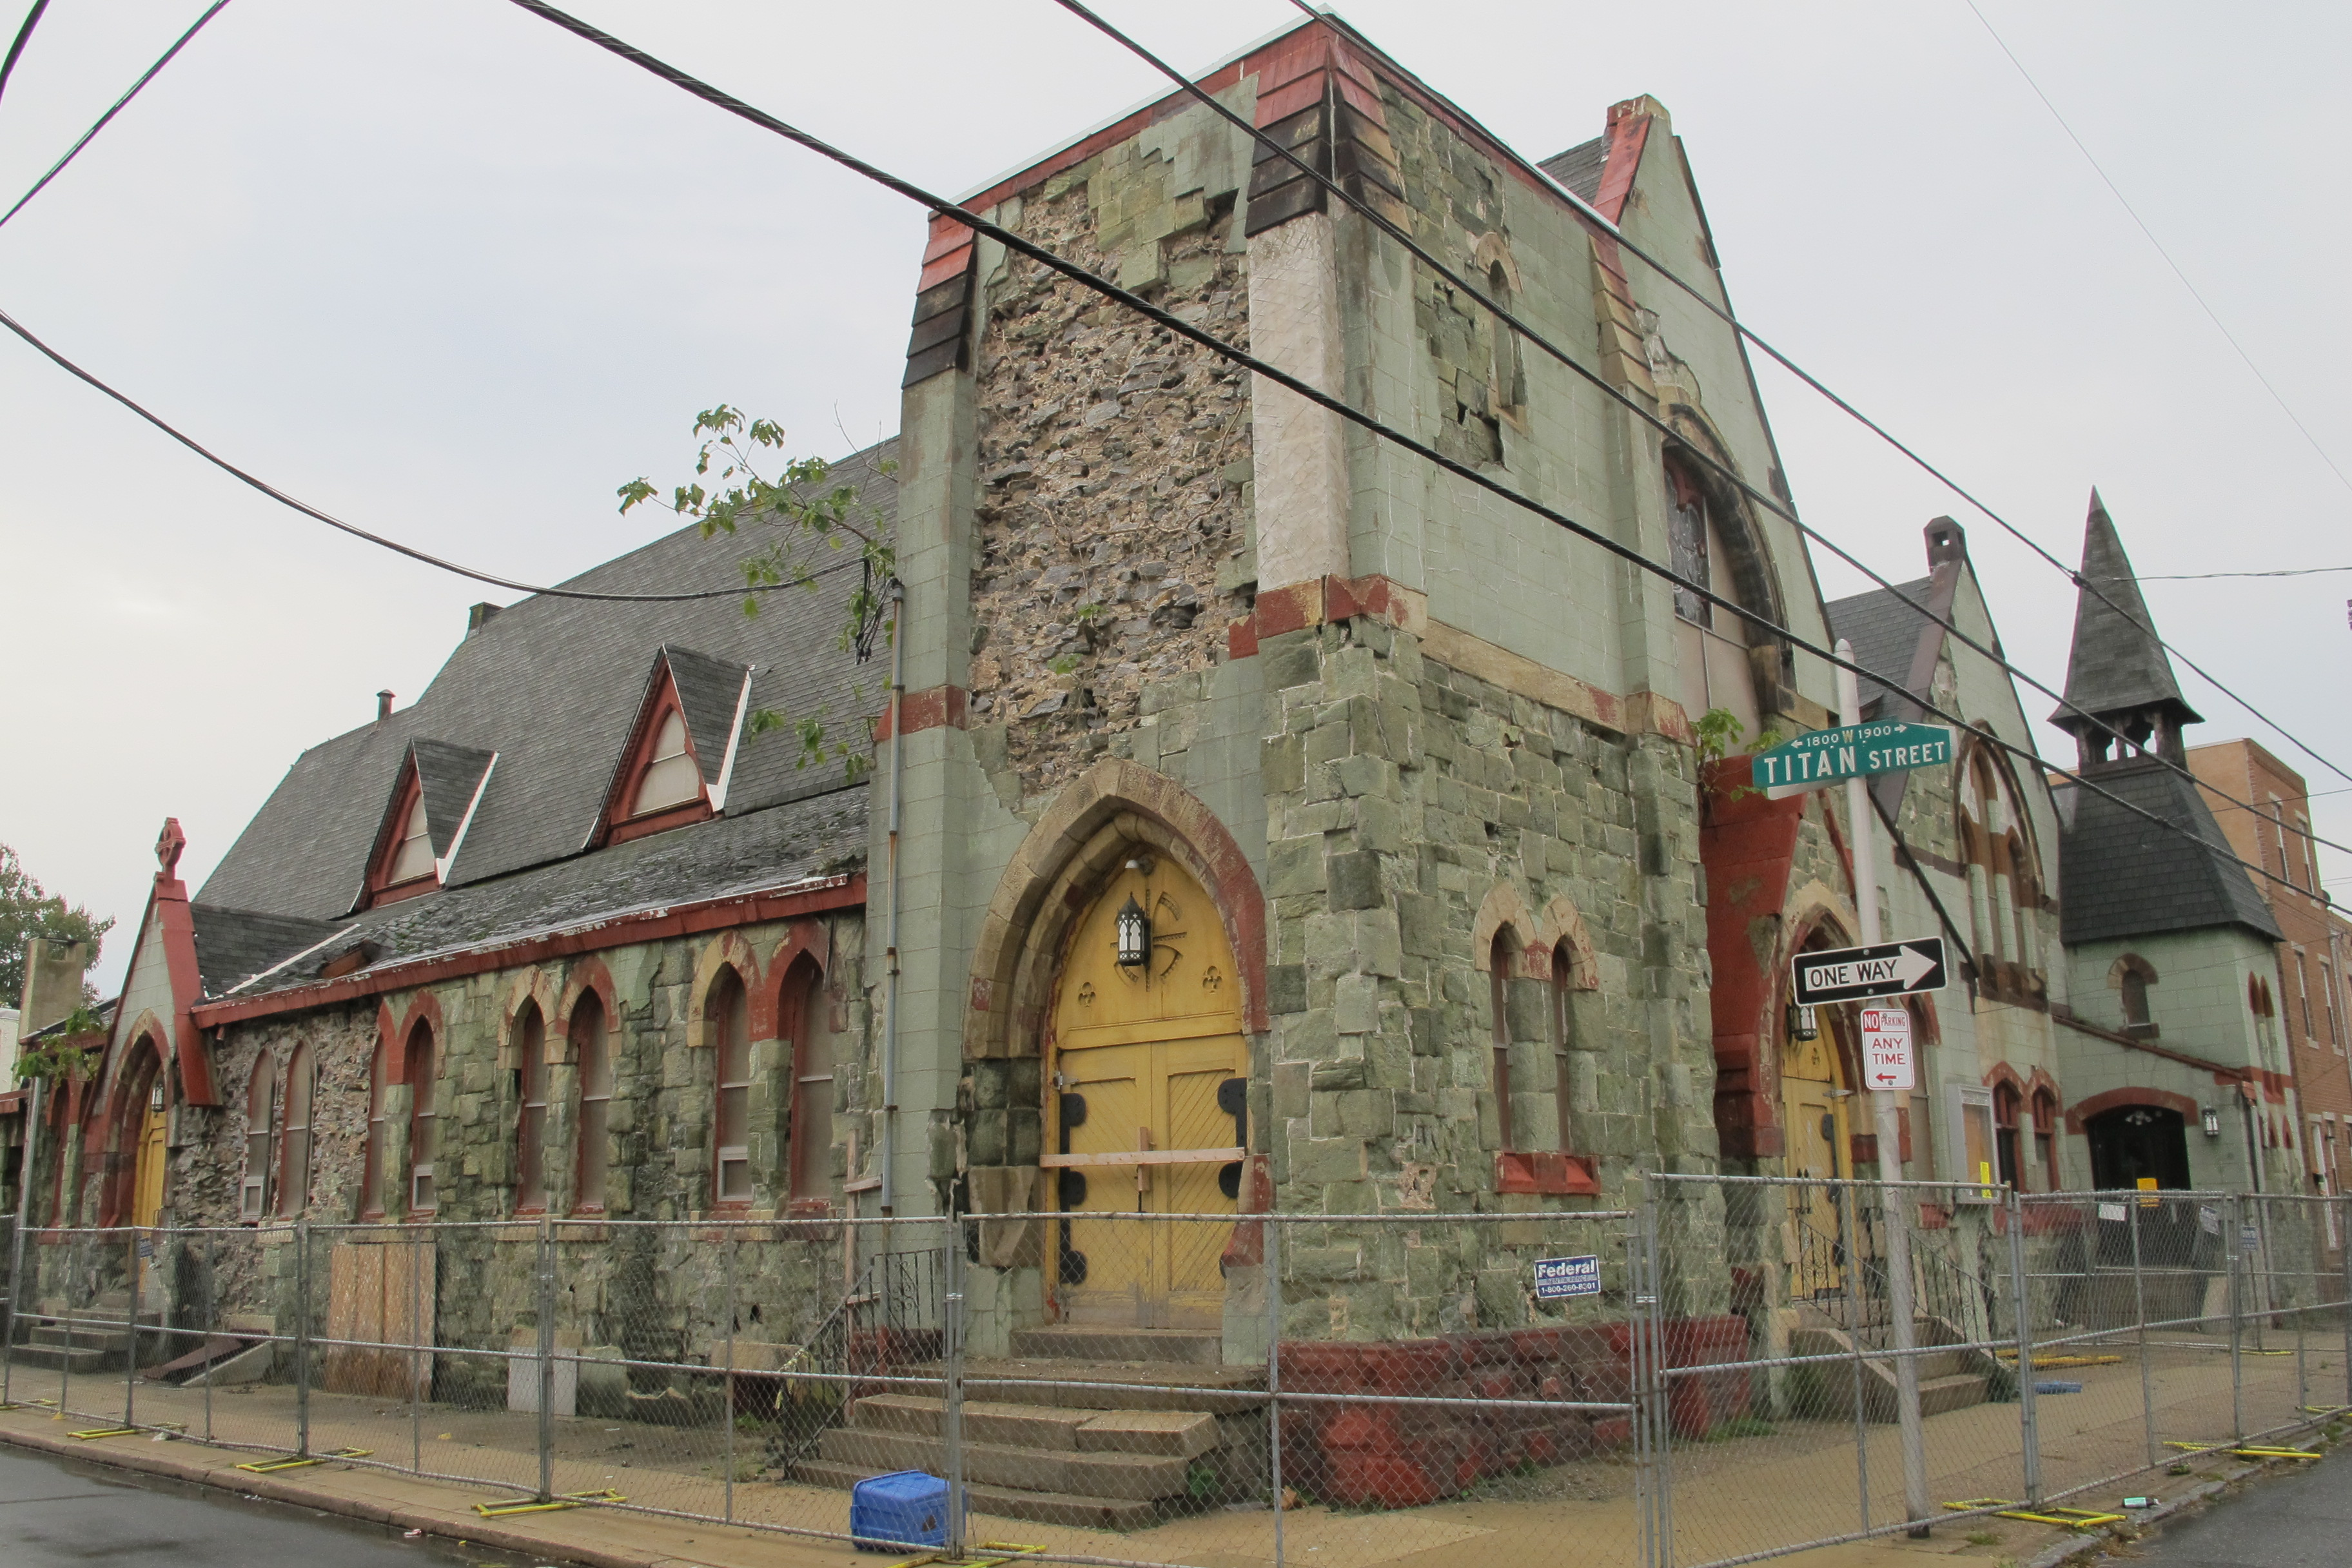 A demolition permit was filed for the 19th Street Baptist Church.